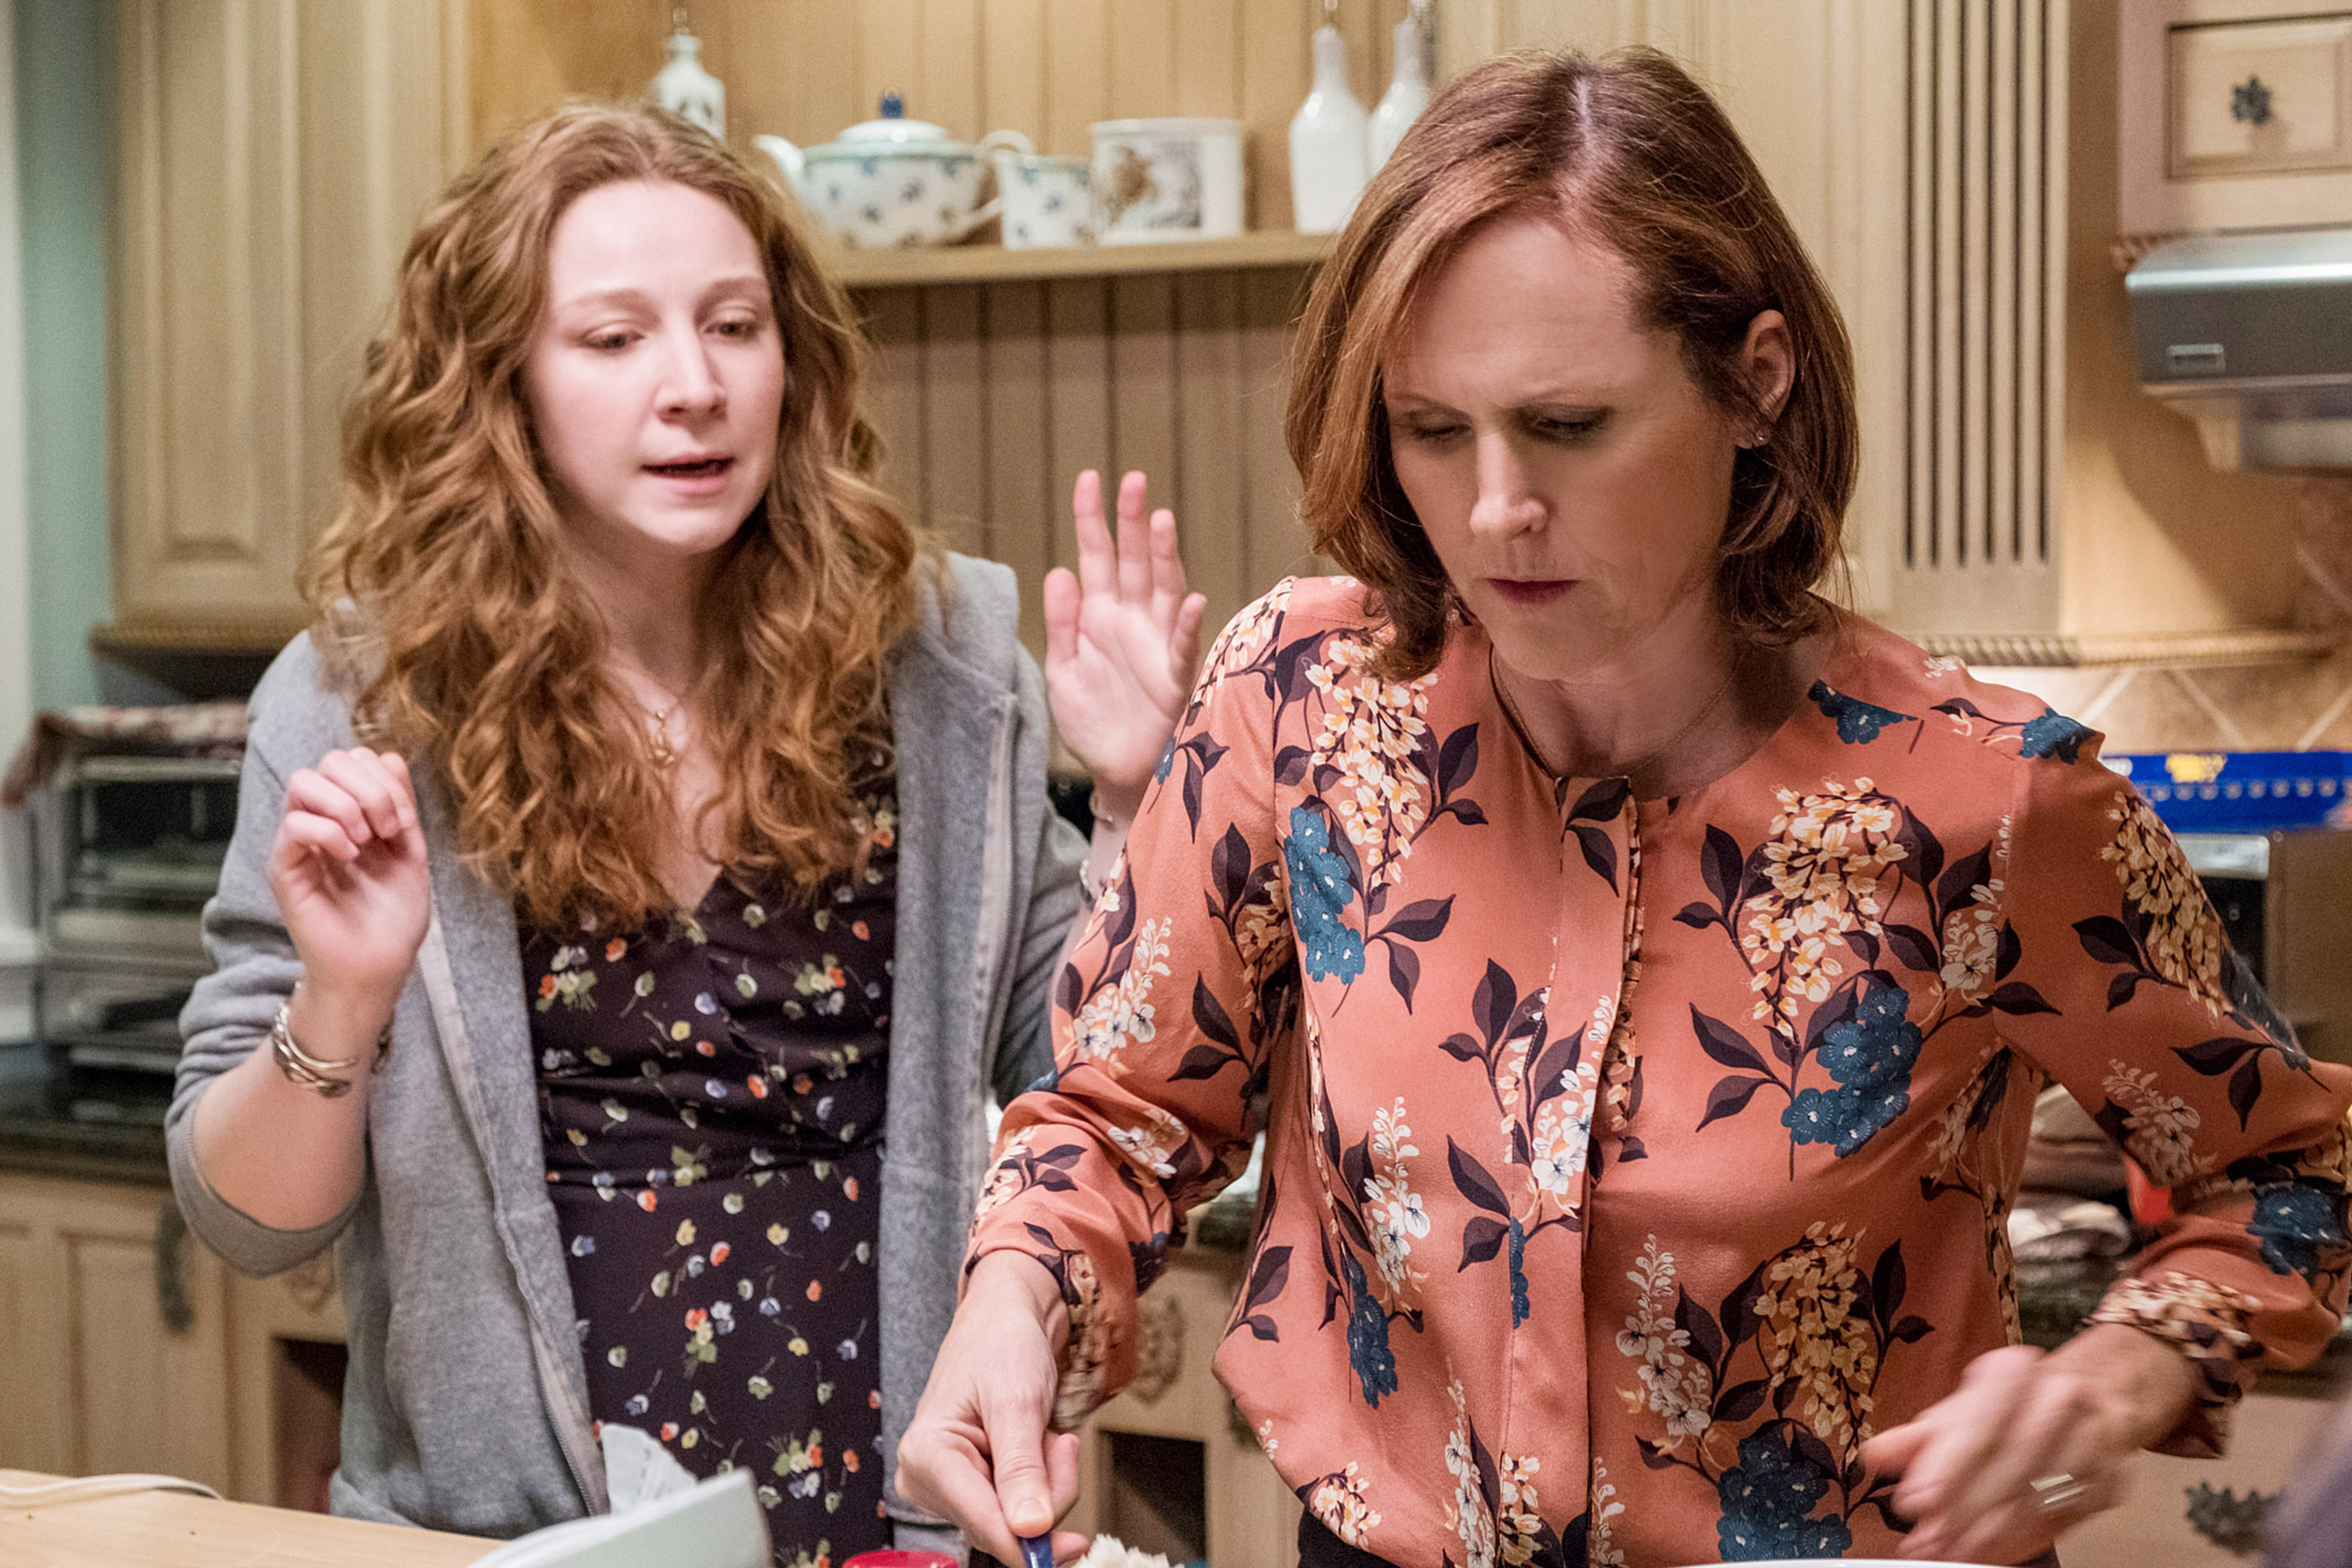 Kayli Carter talks to Molly Shannon while she's cooking